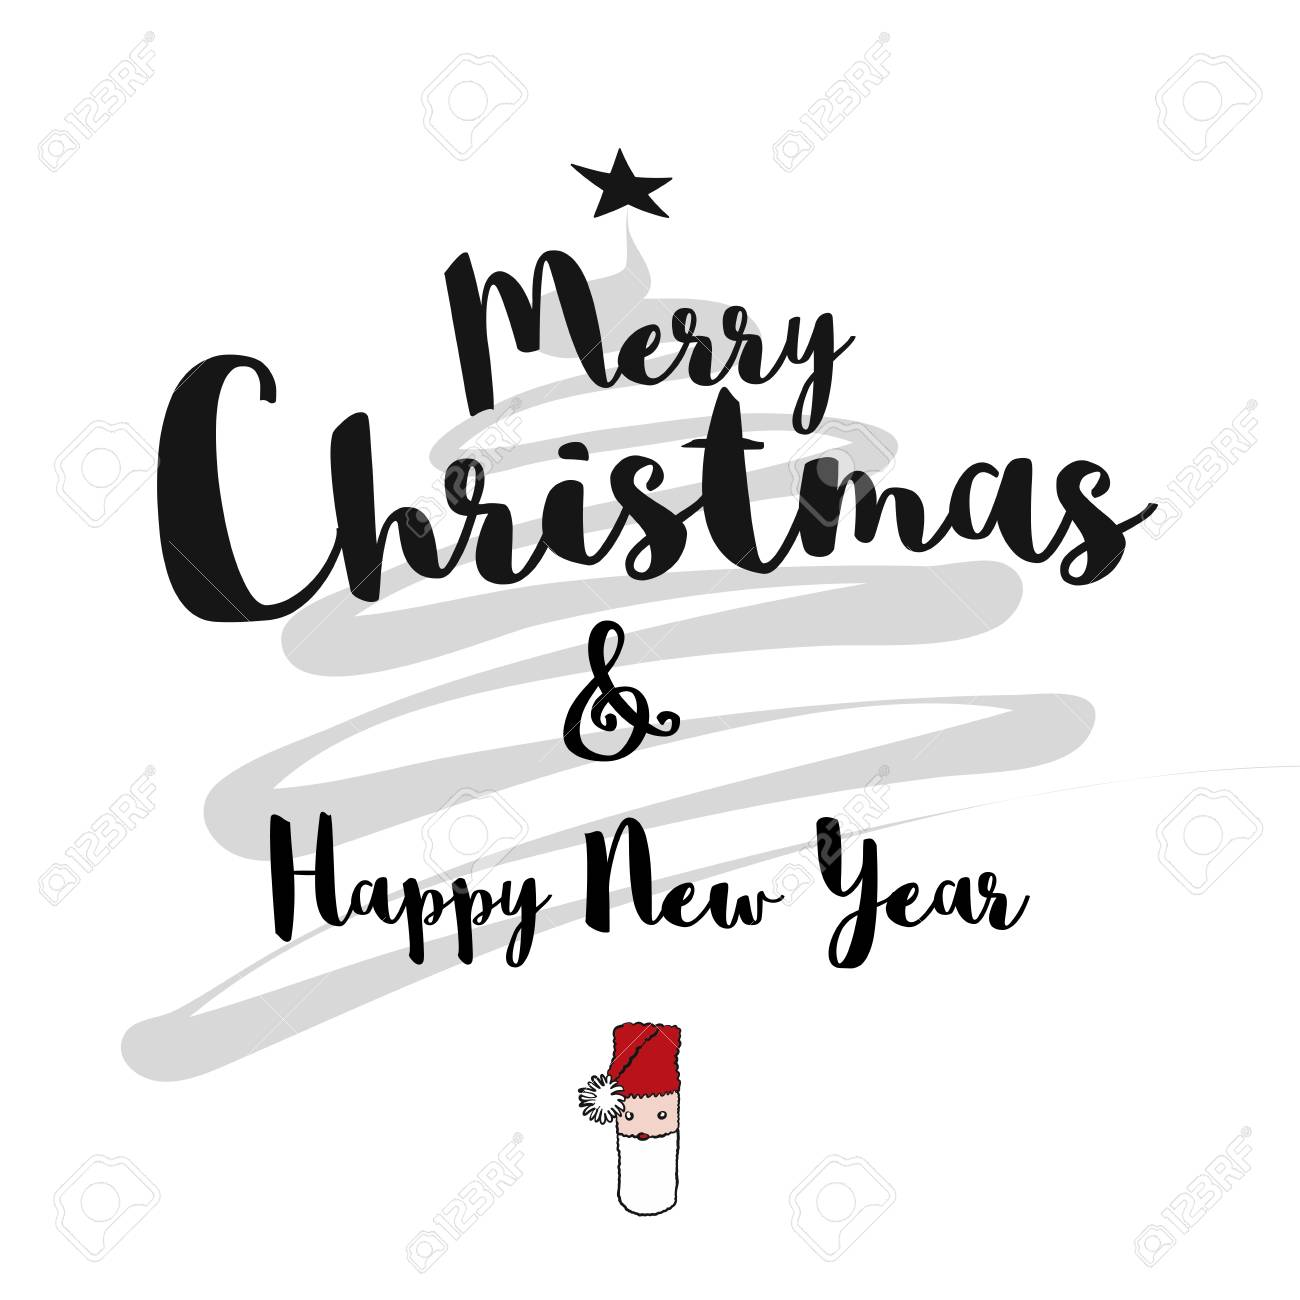 merry christmas and happy new year card hand drawn vector sketch artwork stock